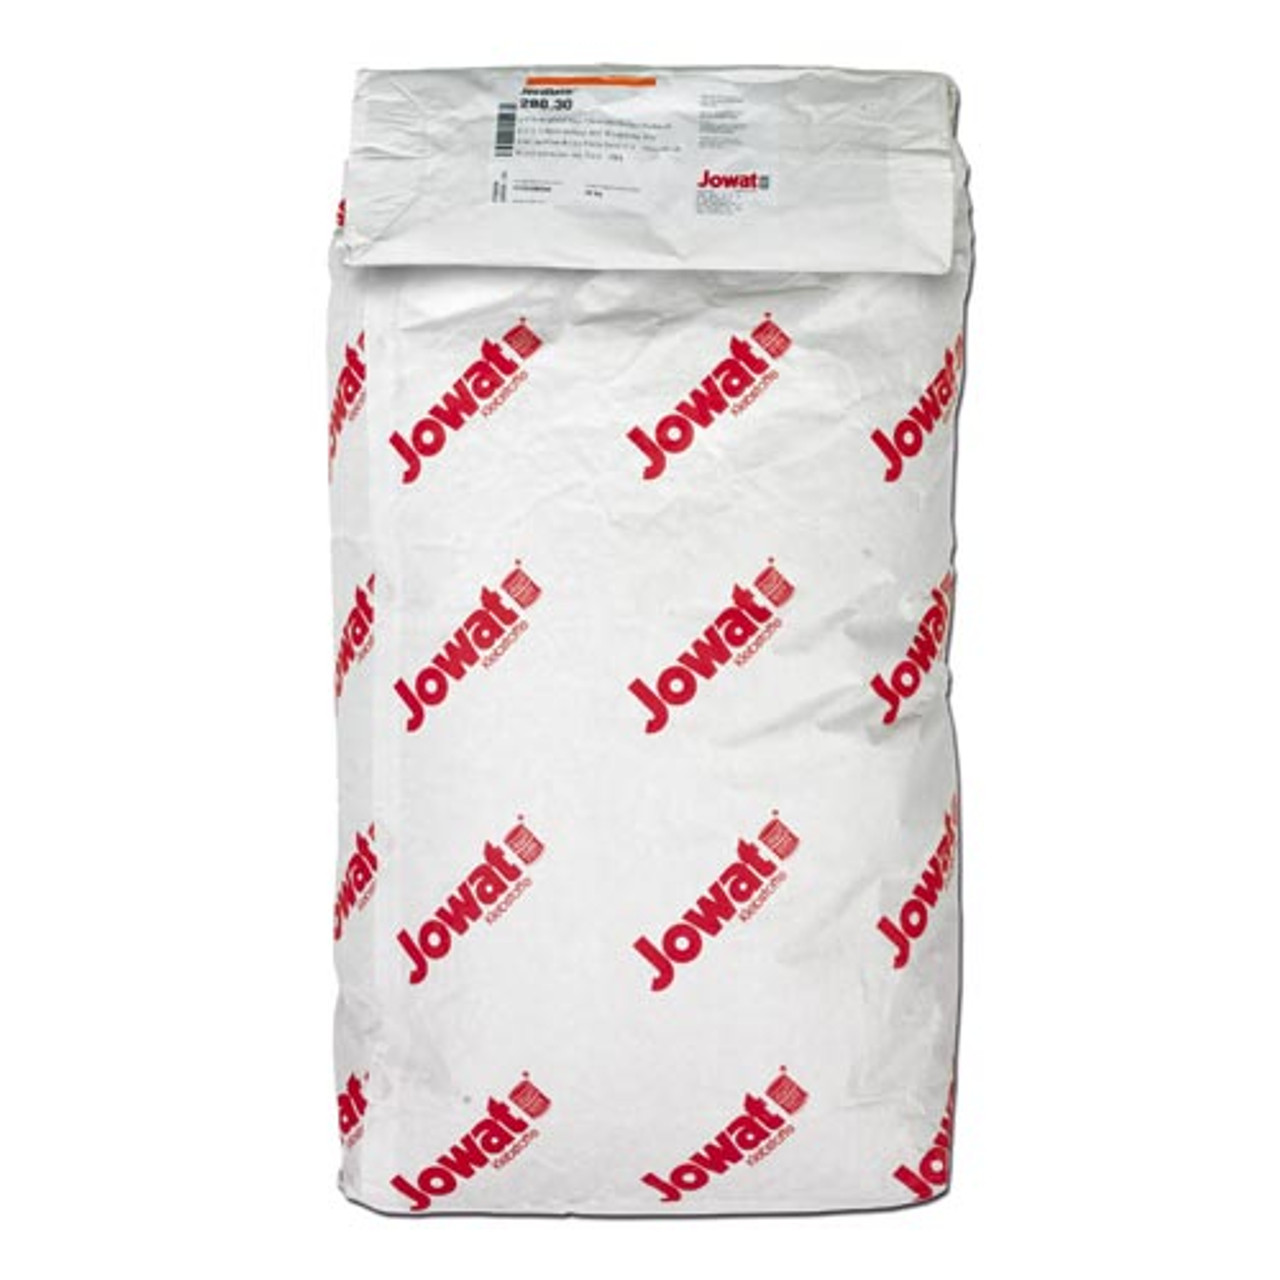 JOWAT28030 Jowat Jowatherm Straight Edgebanding Hot Melt Glue *20 KG bag*- Medium Viscosity | Good Temp Resistance